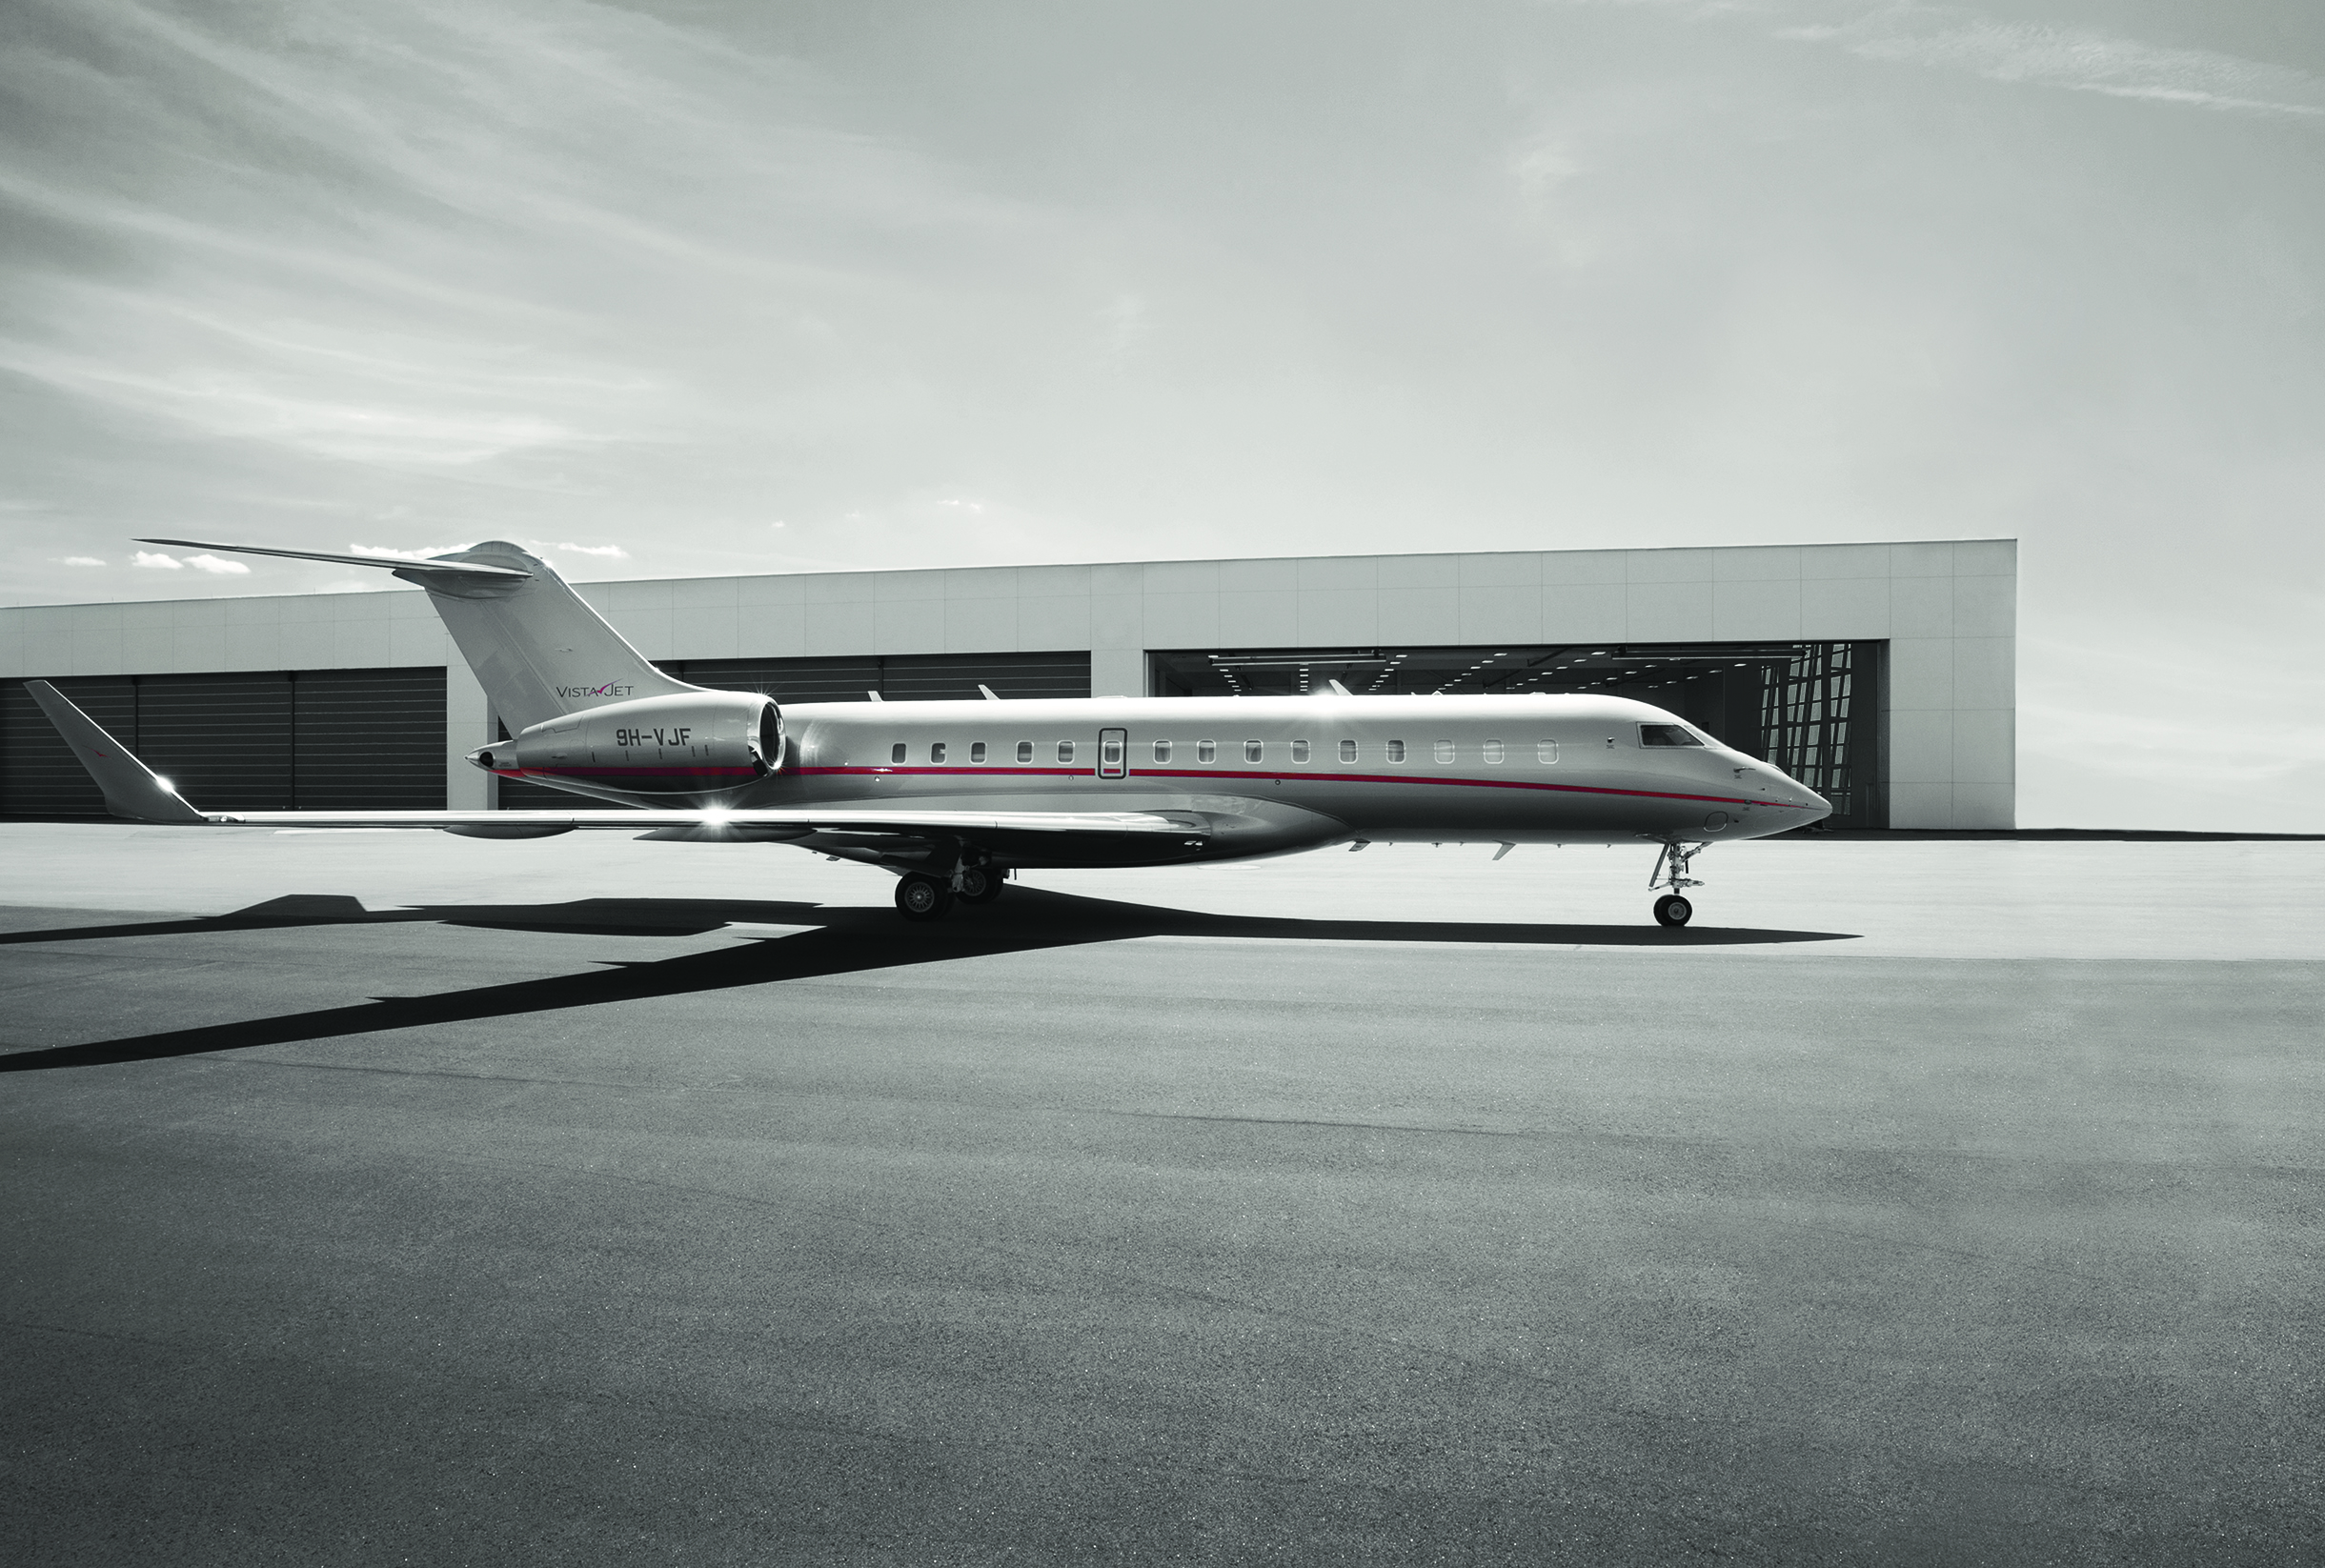 VistaJet Aircraft_Global 6000_on tarmac_4